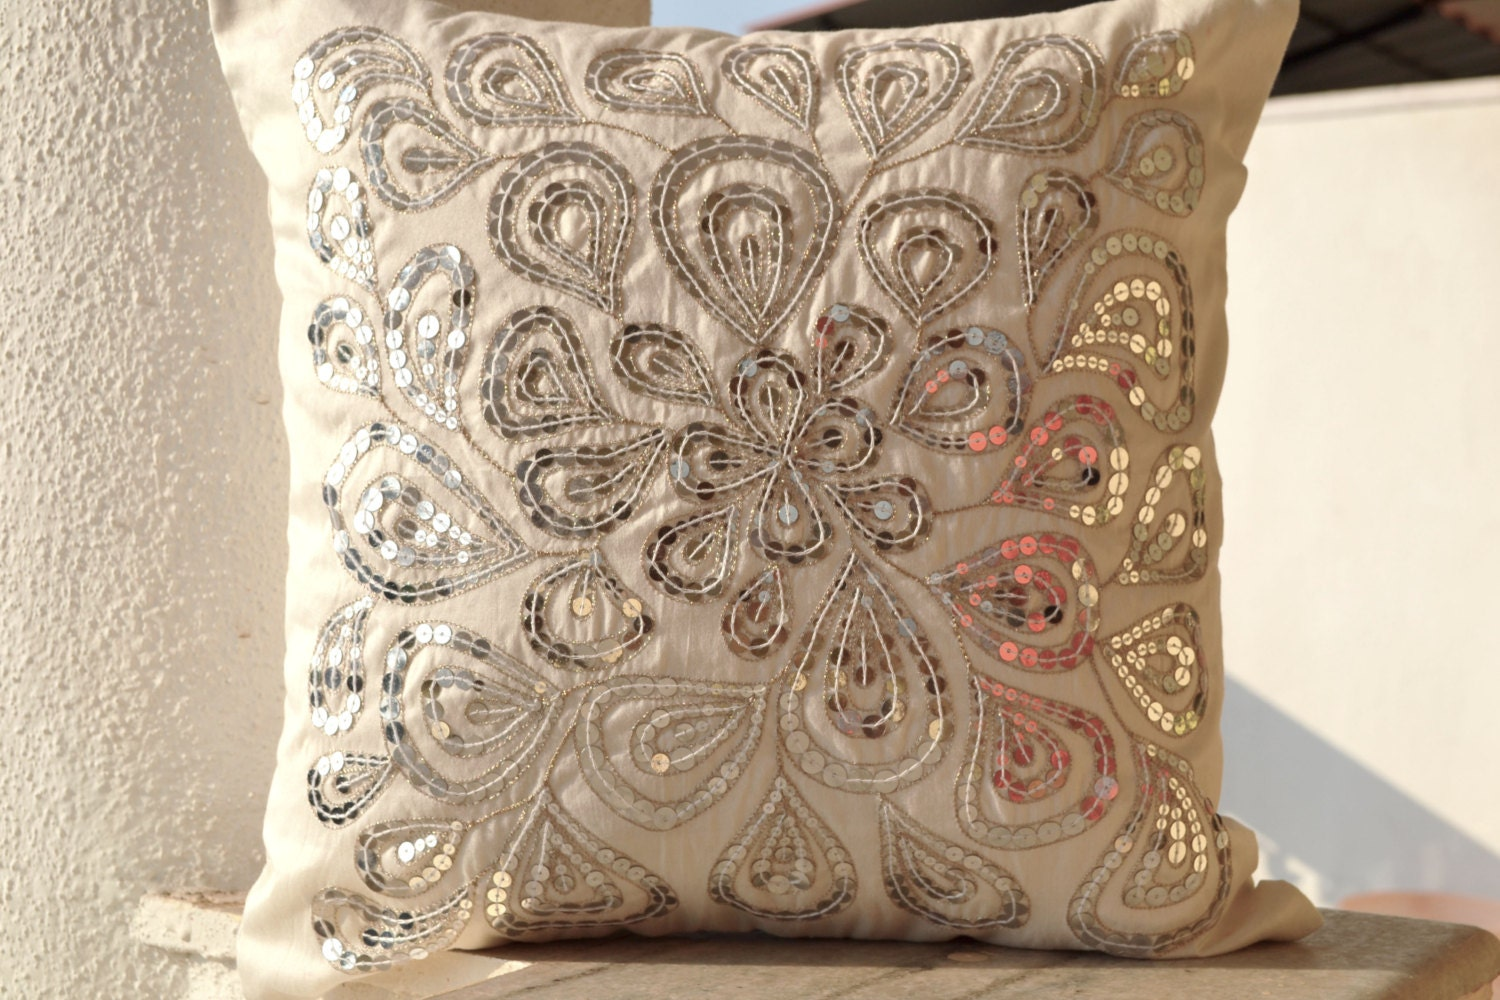 Home Bedding Decorative Bed Pillows Decorative Sofa Pillows Sofa Pillow  Covers Large Sofa Pillows Home .